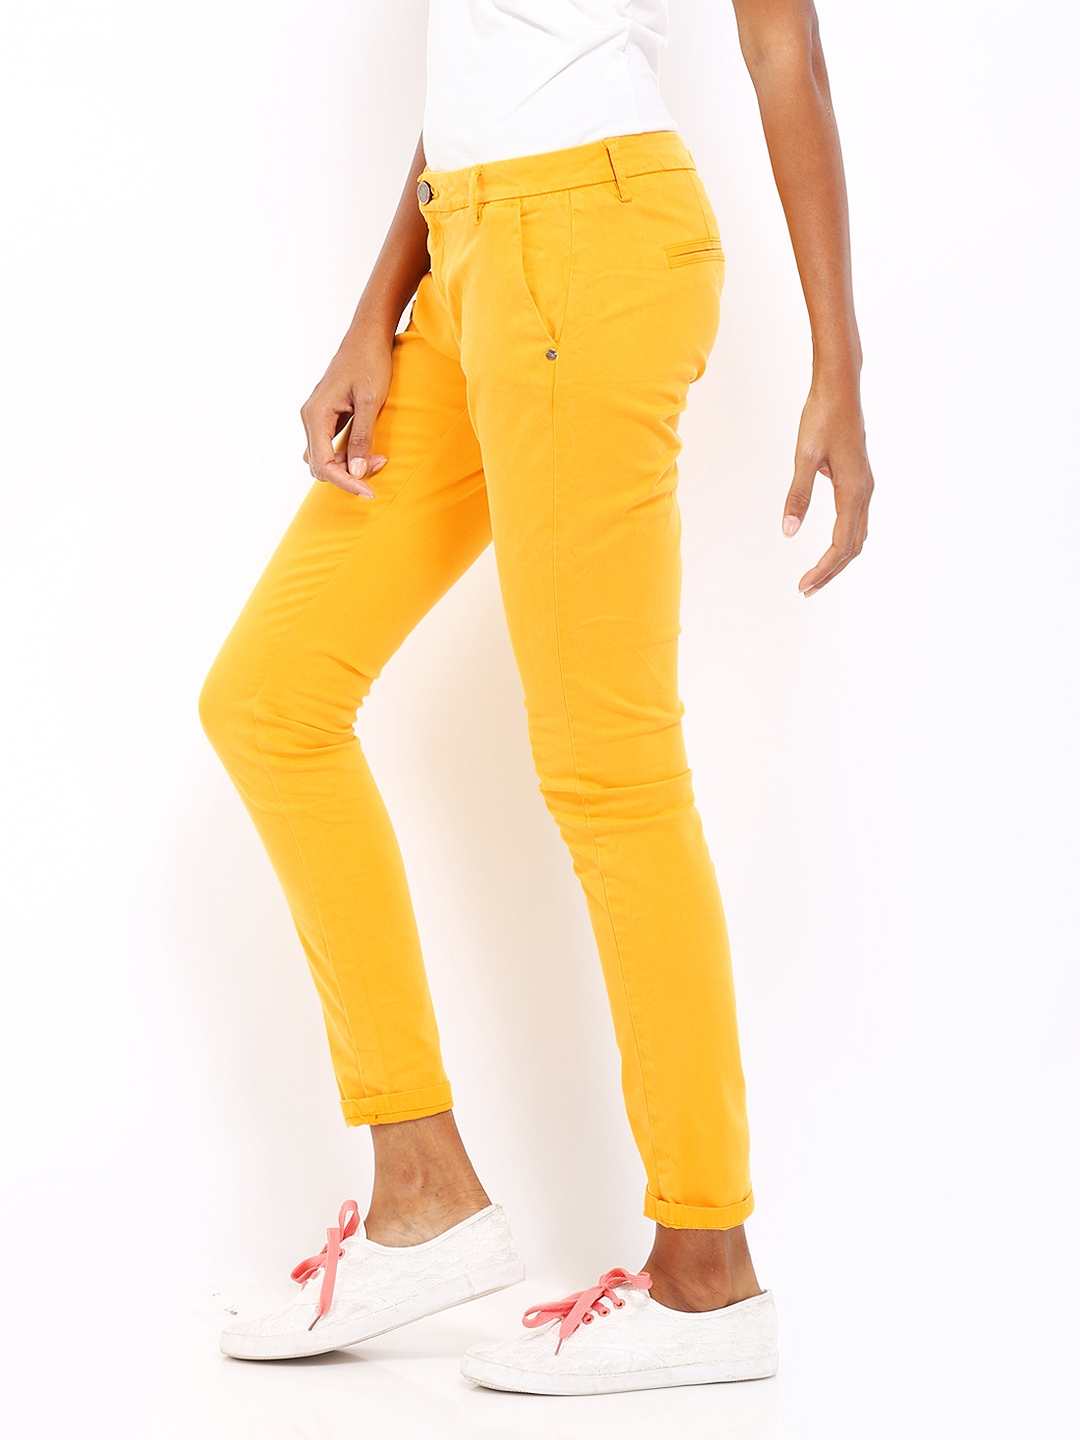 Creative  Mustard Yellow Corduroy Skinny Pants Retail Price 170 Size 25